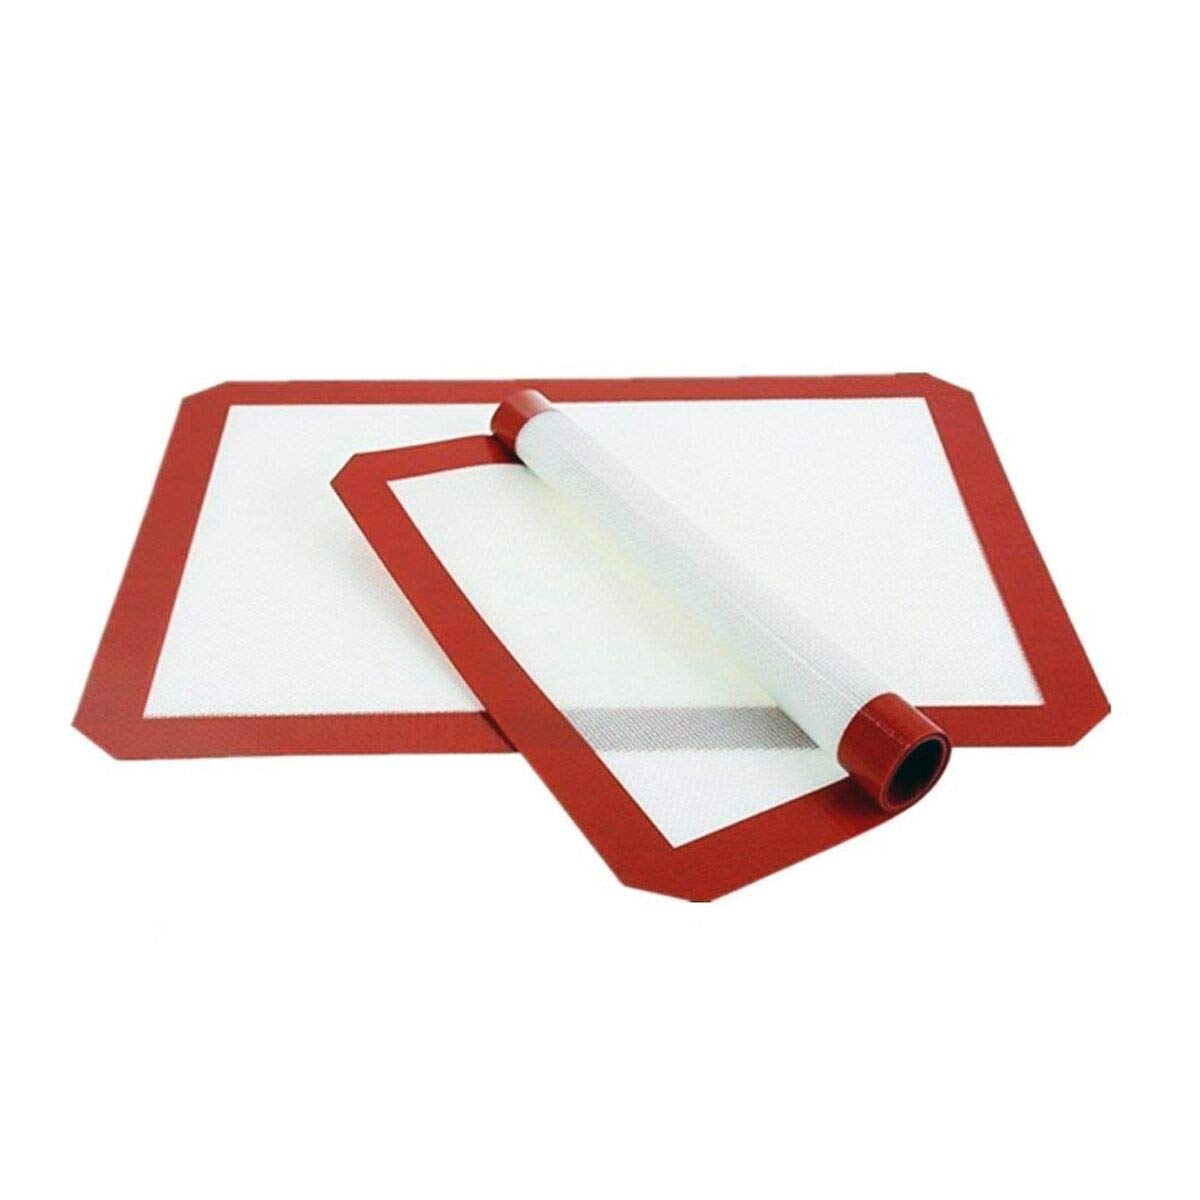 2X Non-Stick Silicone Baking Mat - Cook without Oil or Butter - Professional Quality Reusable Silicone Sheet 38cm x 28cm Sweedon Sw004